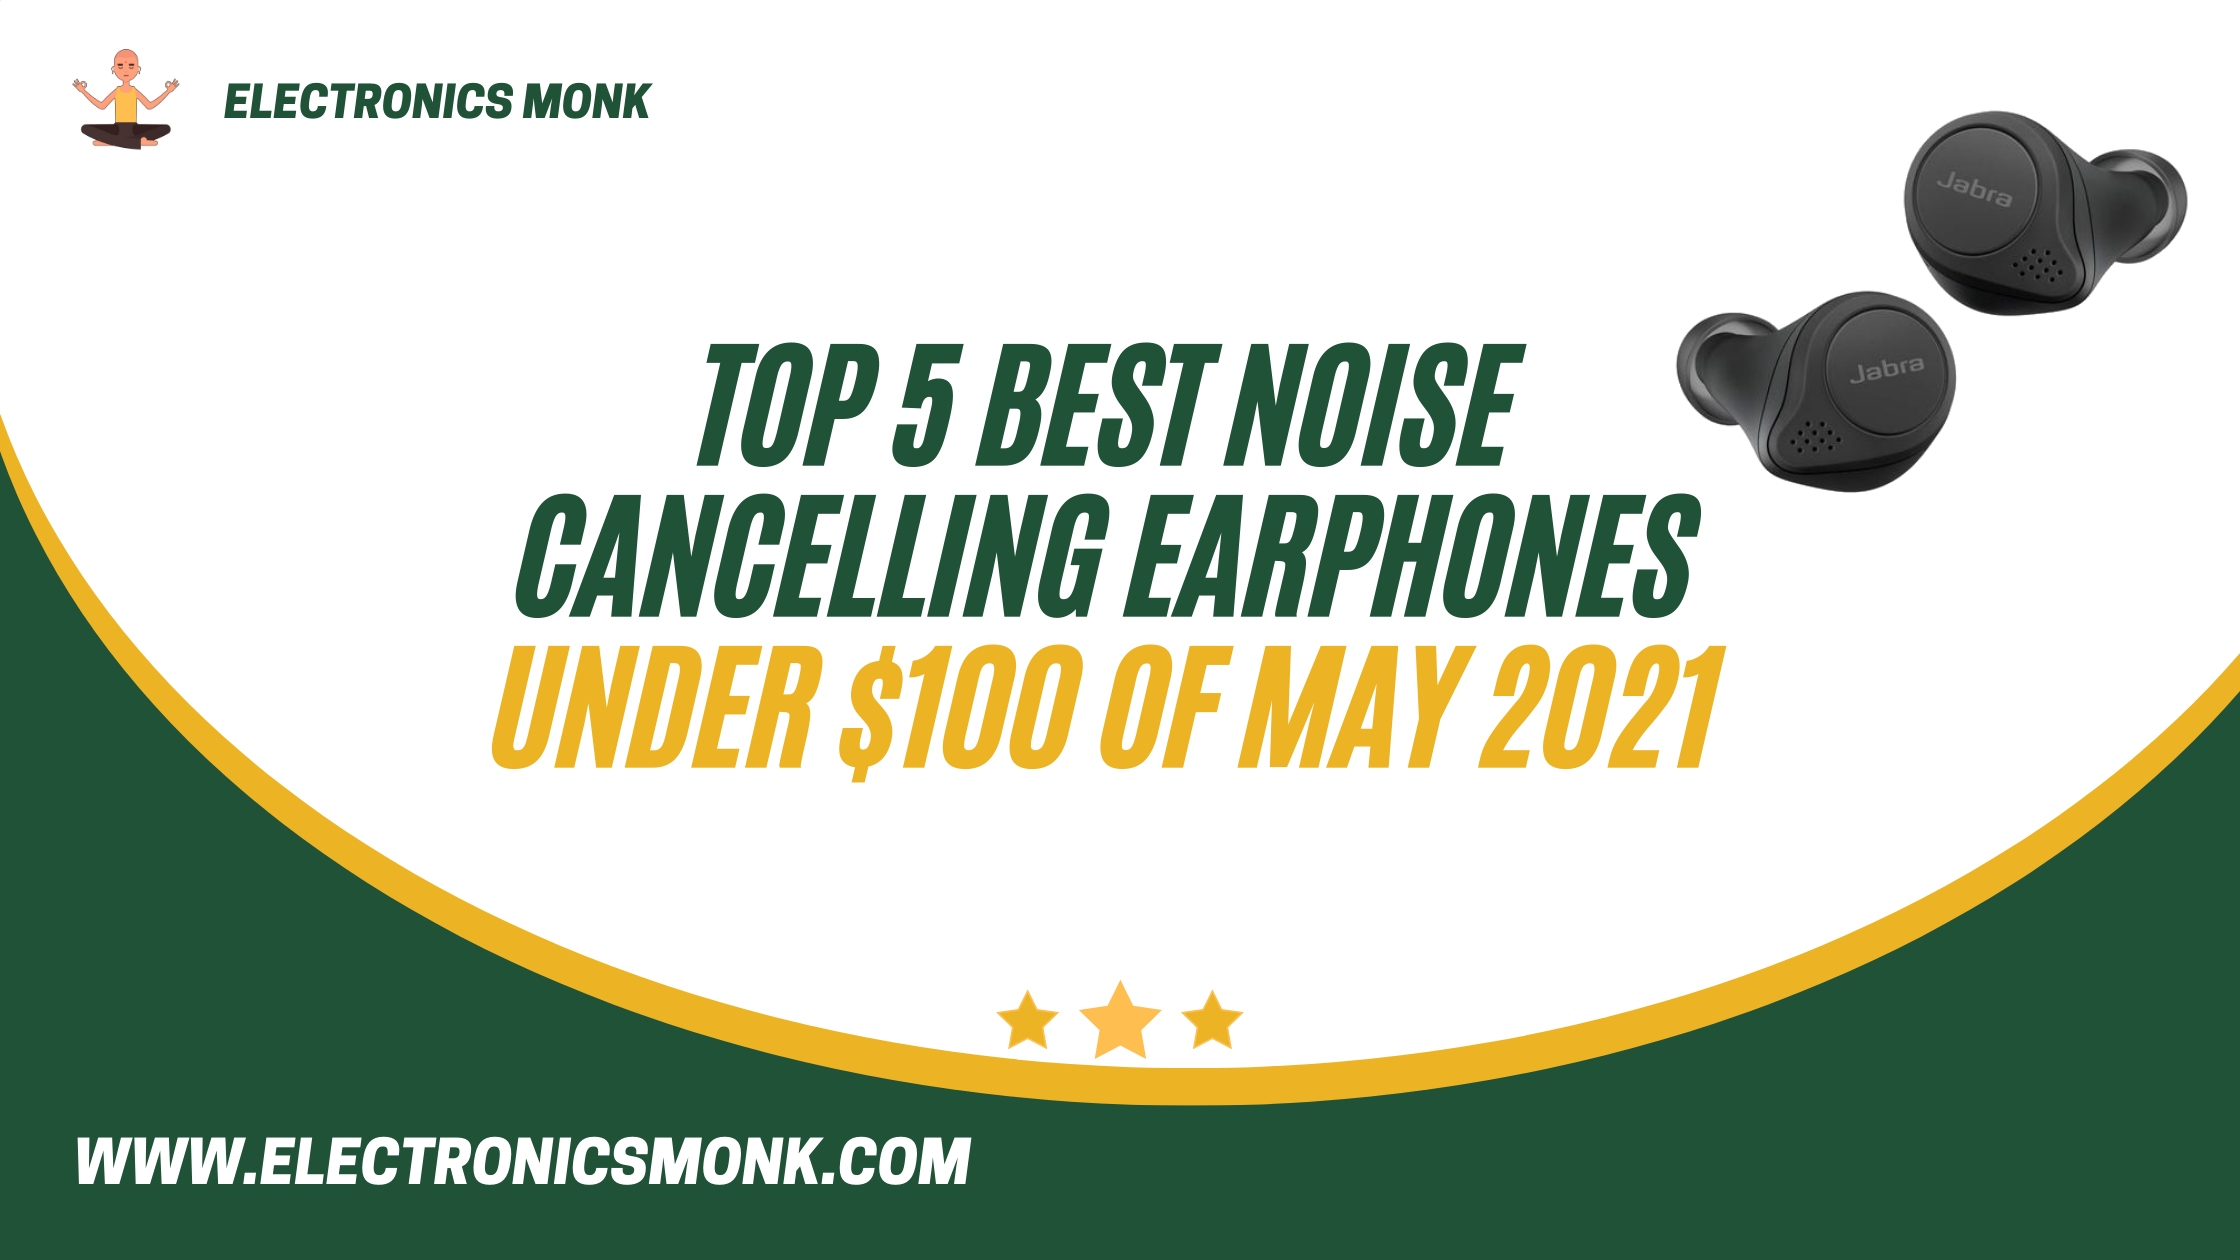 Top 5 Best Noise Cancelling Earphones Under $100 Of May 2021